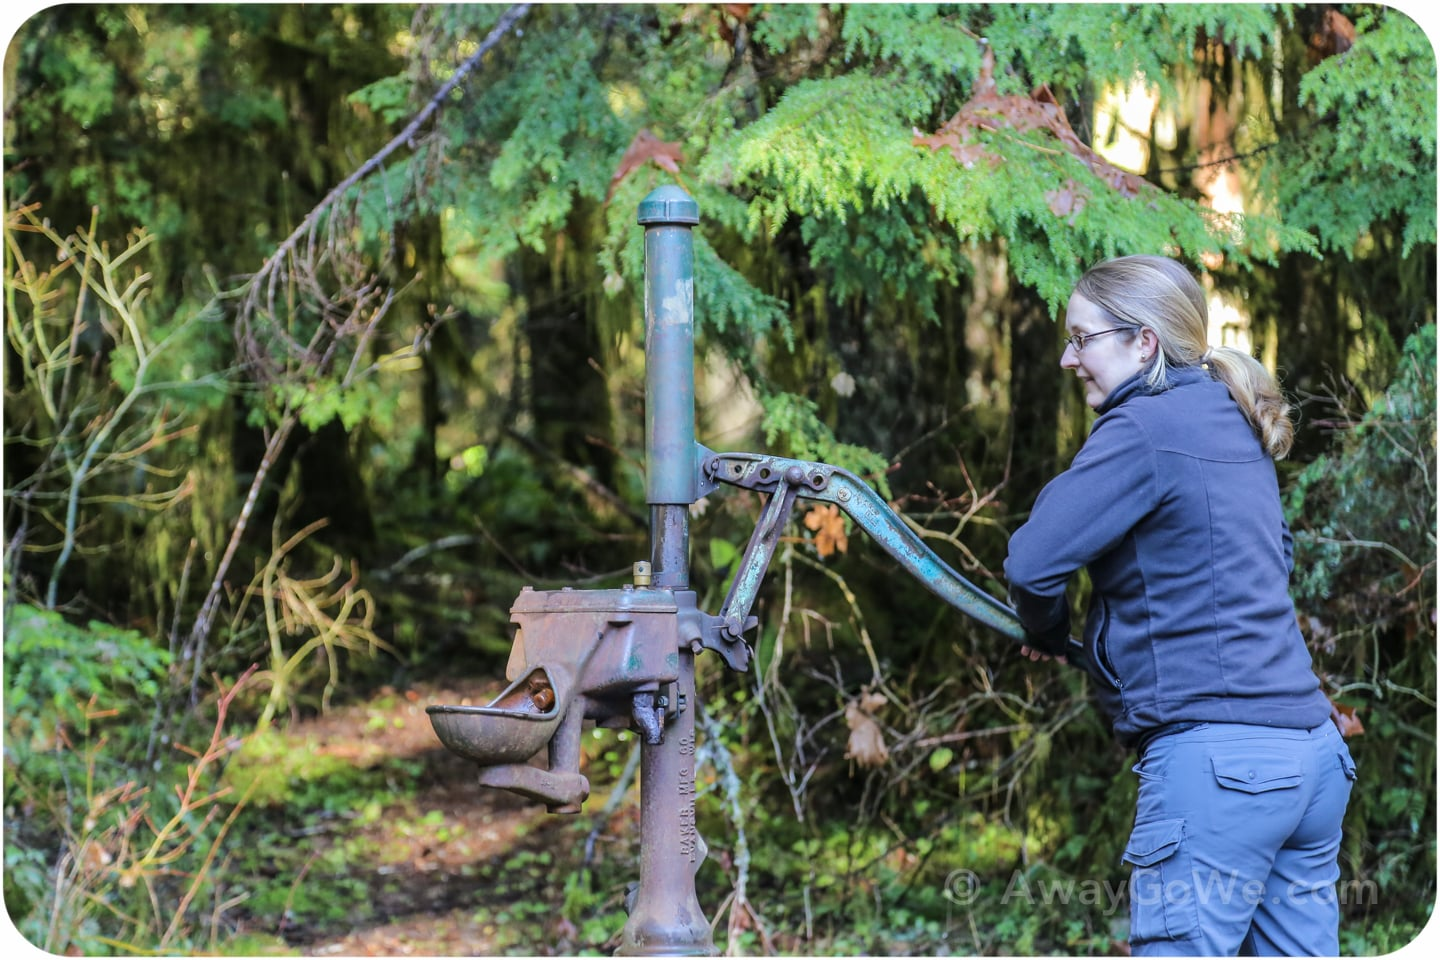 interrorem cabin olympic national park water hand pump